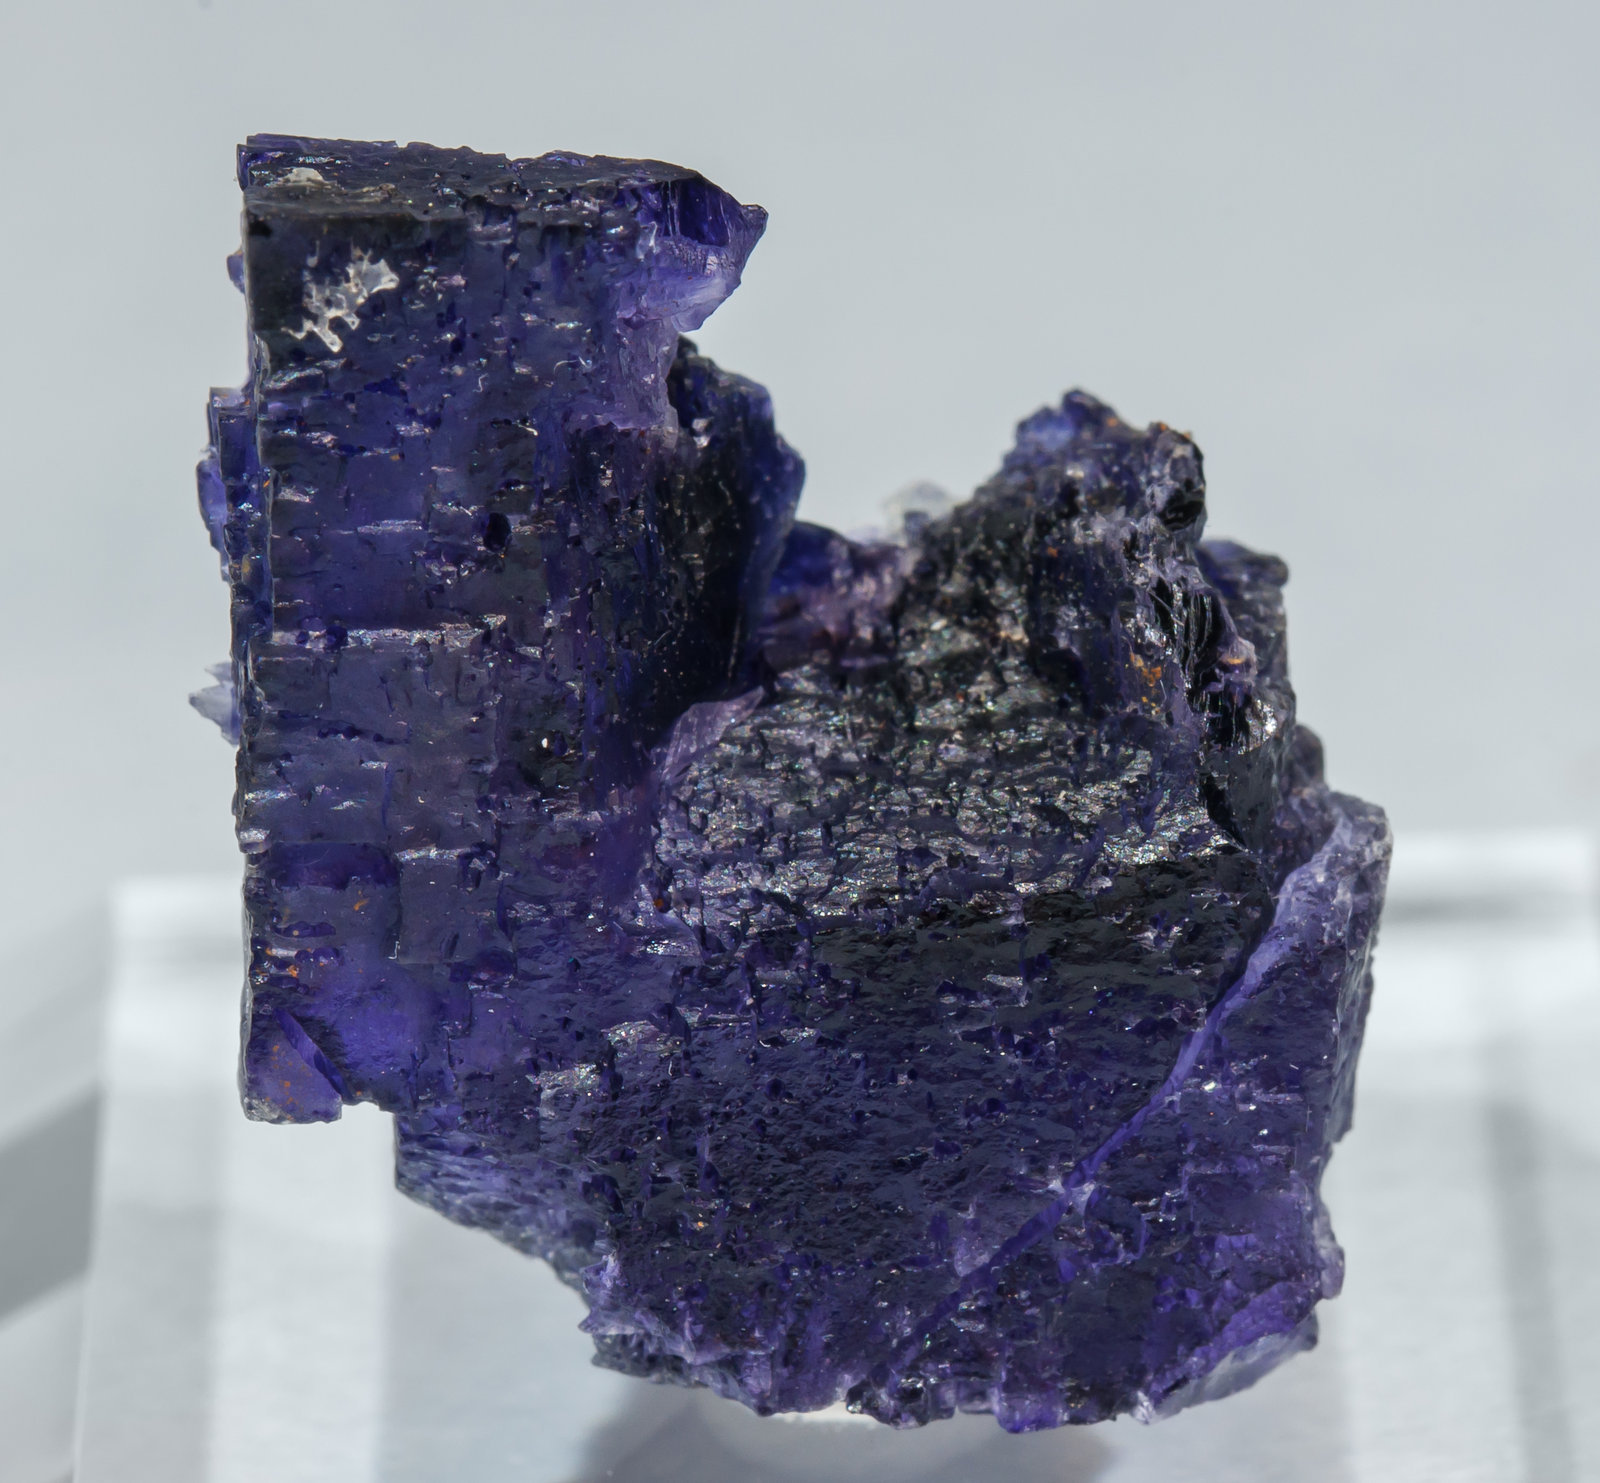 specimens/s_imagesAH2/Fluorite-ND96AH2f.jpg